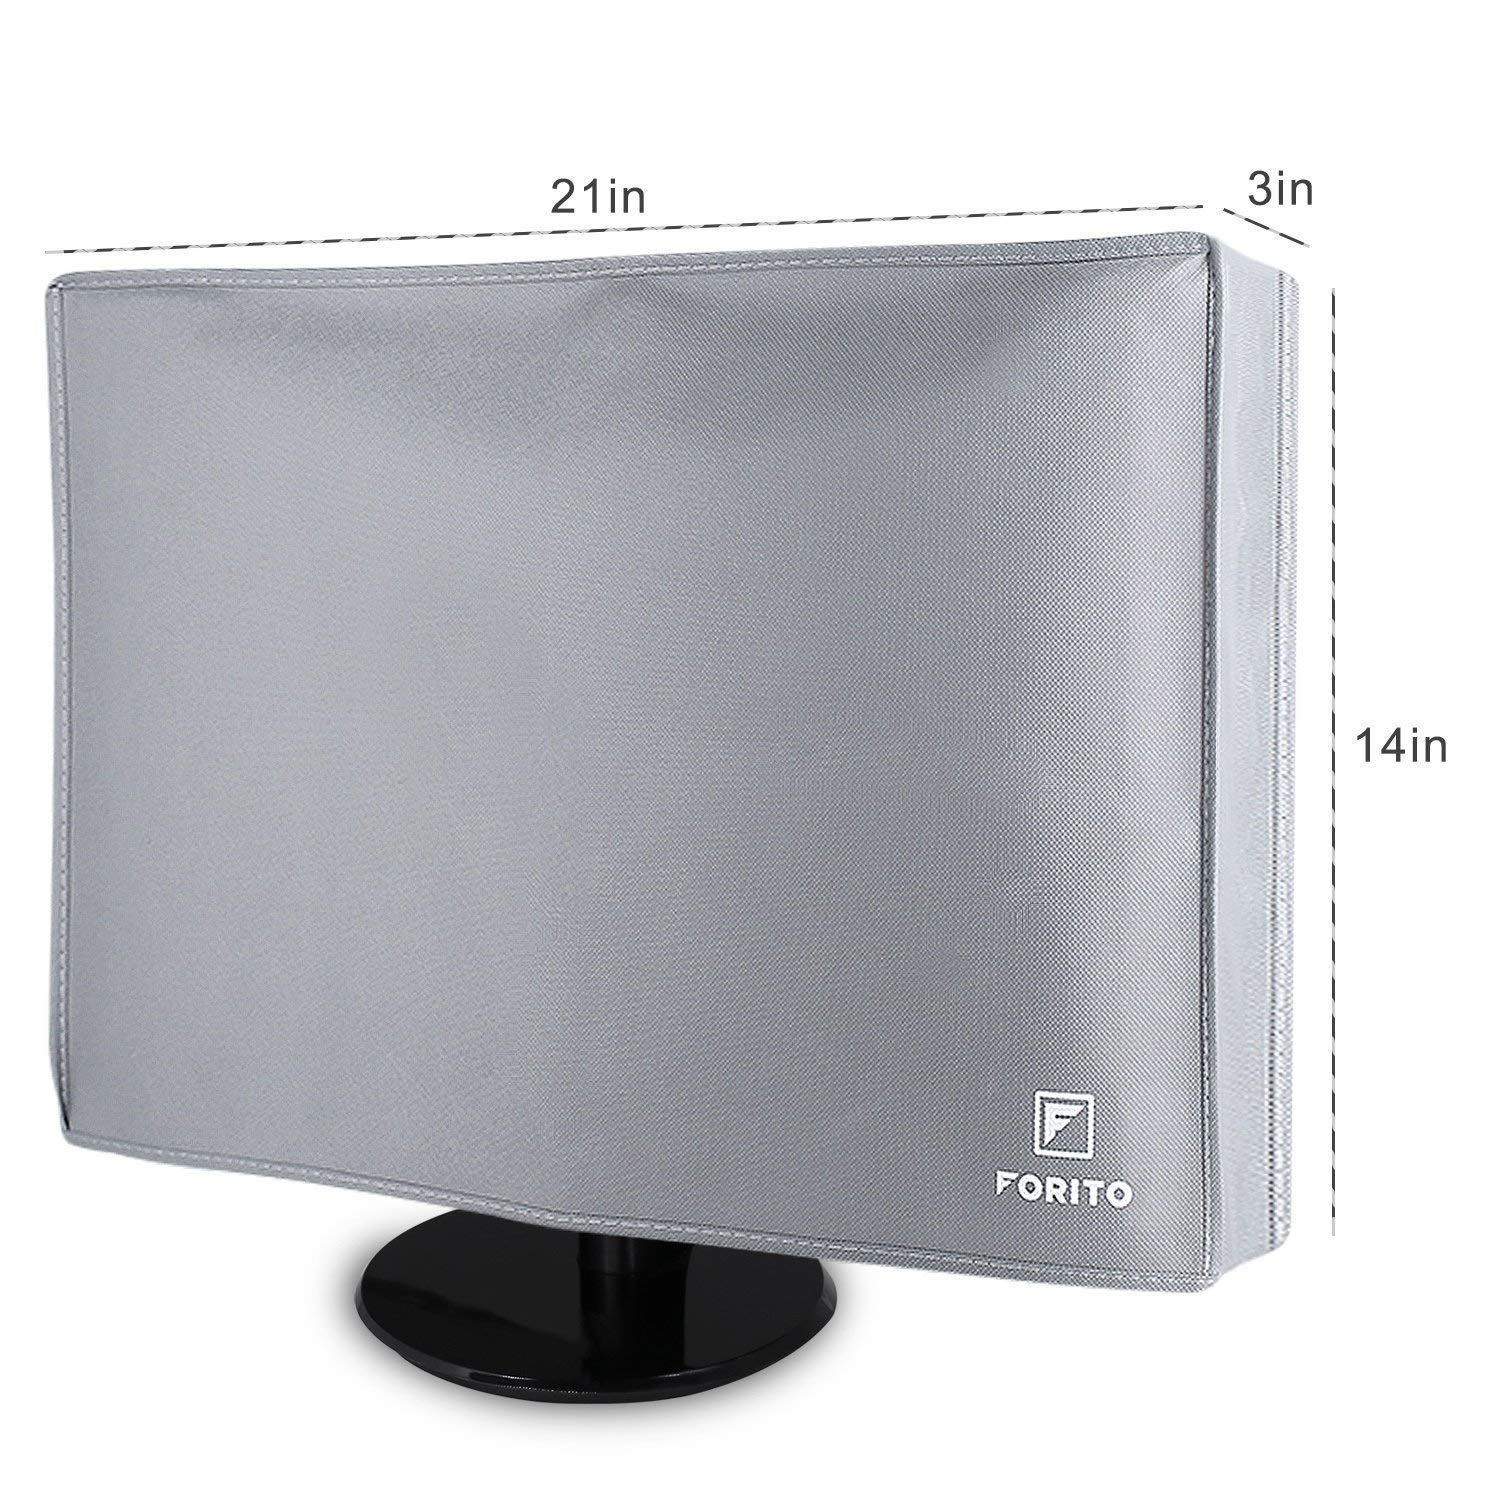 "19"" 20"" 21.5"" 22"" Universal Computer Monitor Dust Cover for 19 Inch to 22 Inch LCD/LED HD Screen Panel (Size: 21W x 14H x 3D), Nonwoven Fabric Dust-Proof, Water Resistant -Gray"